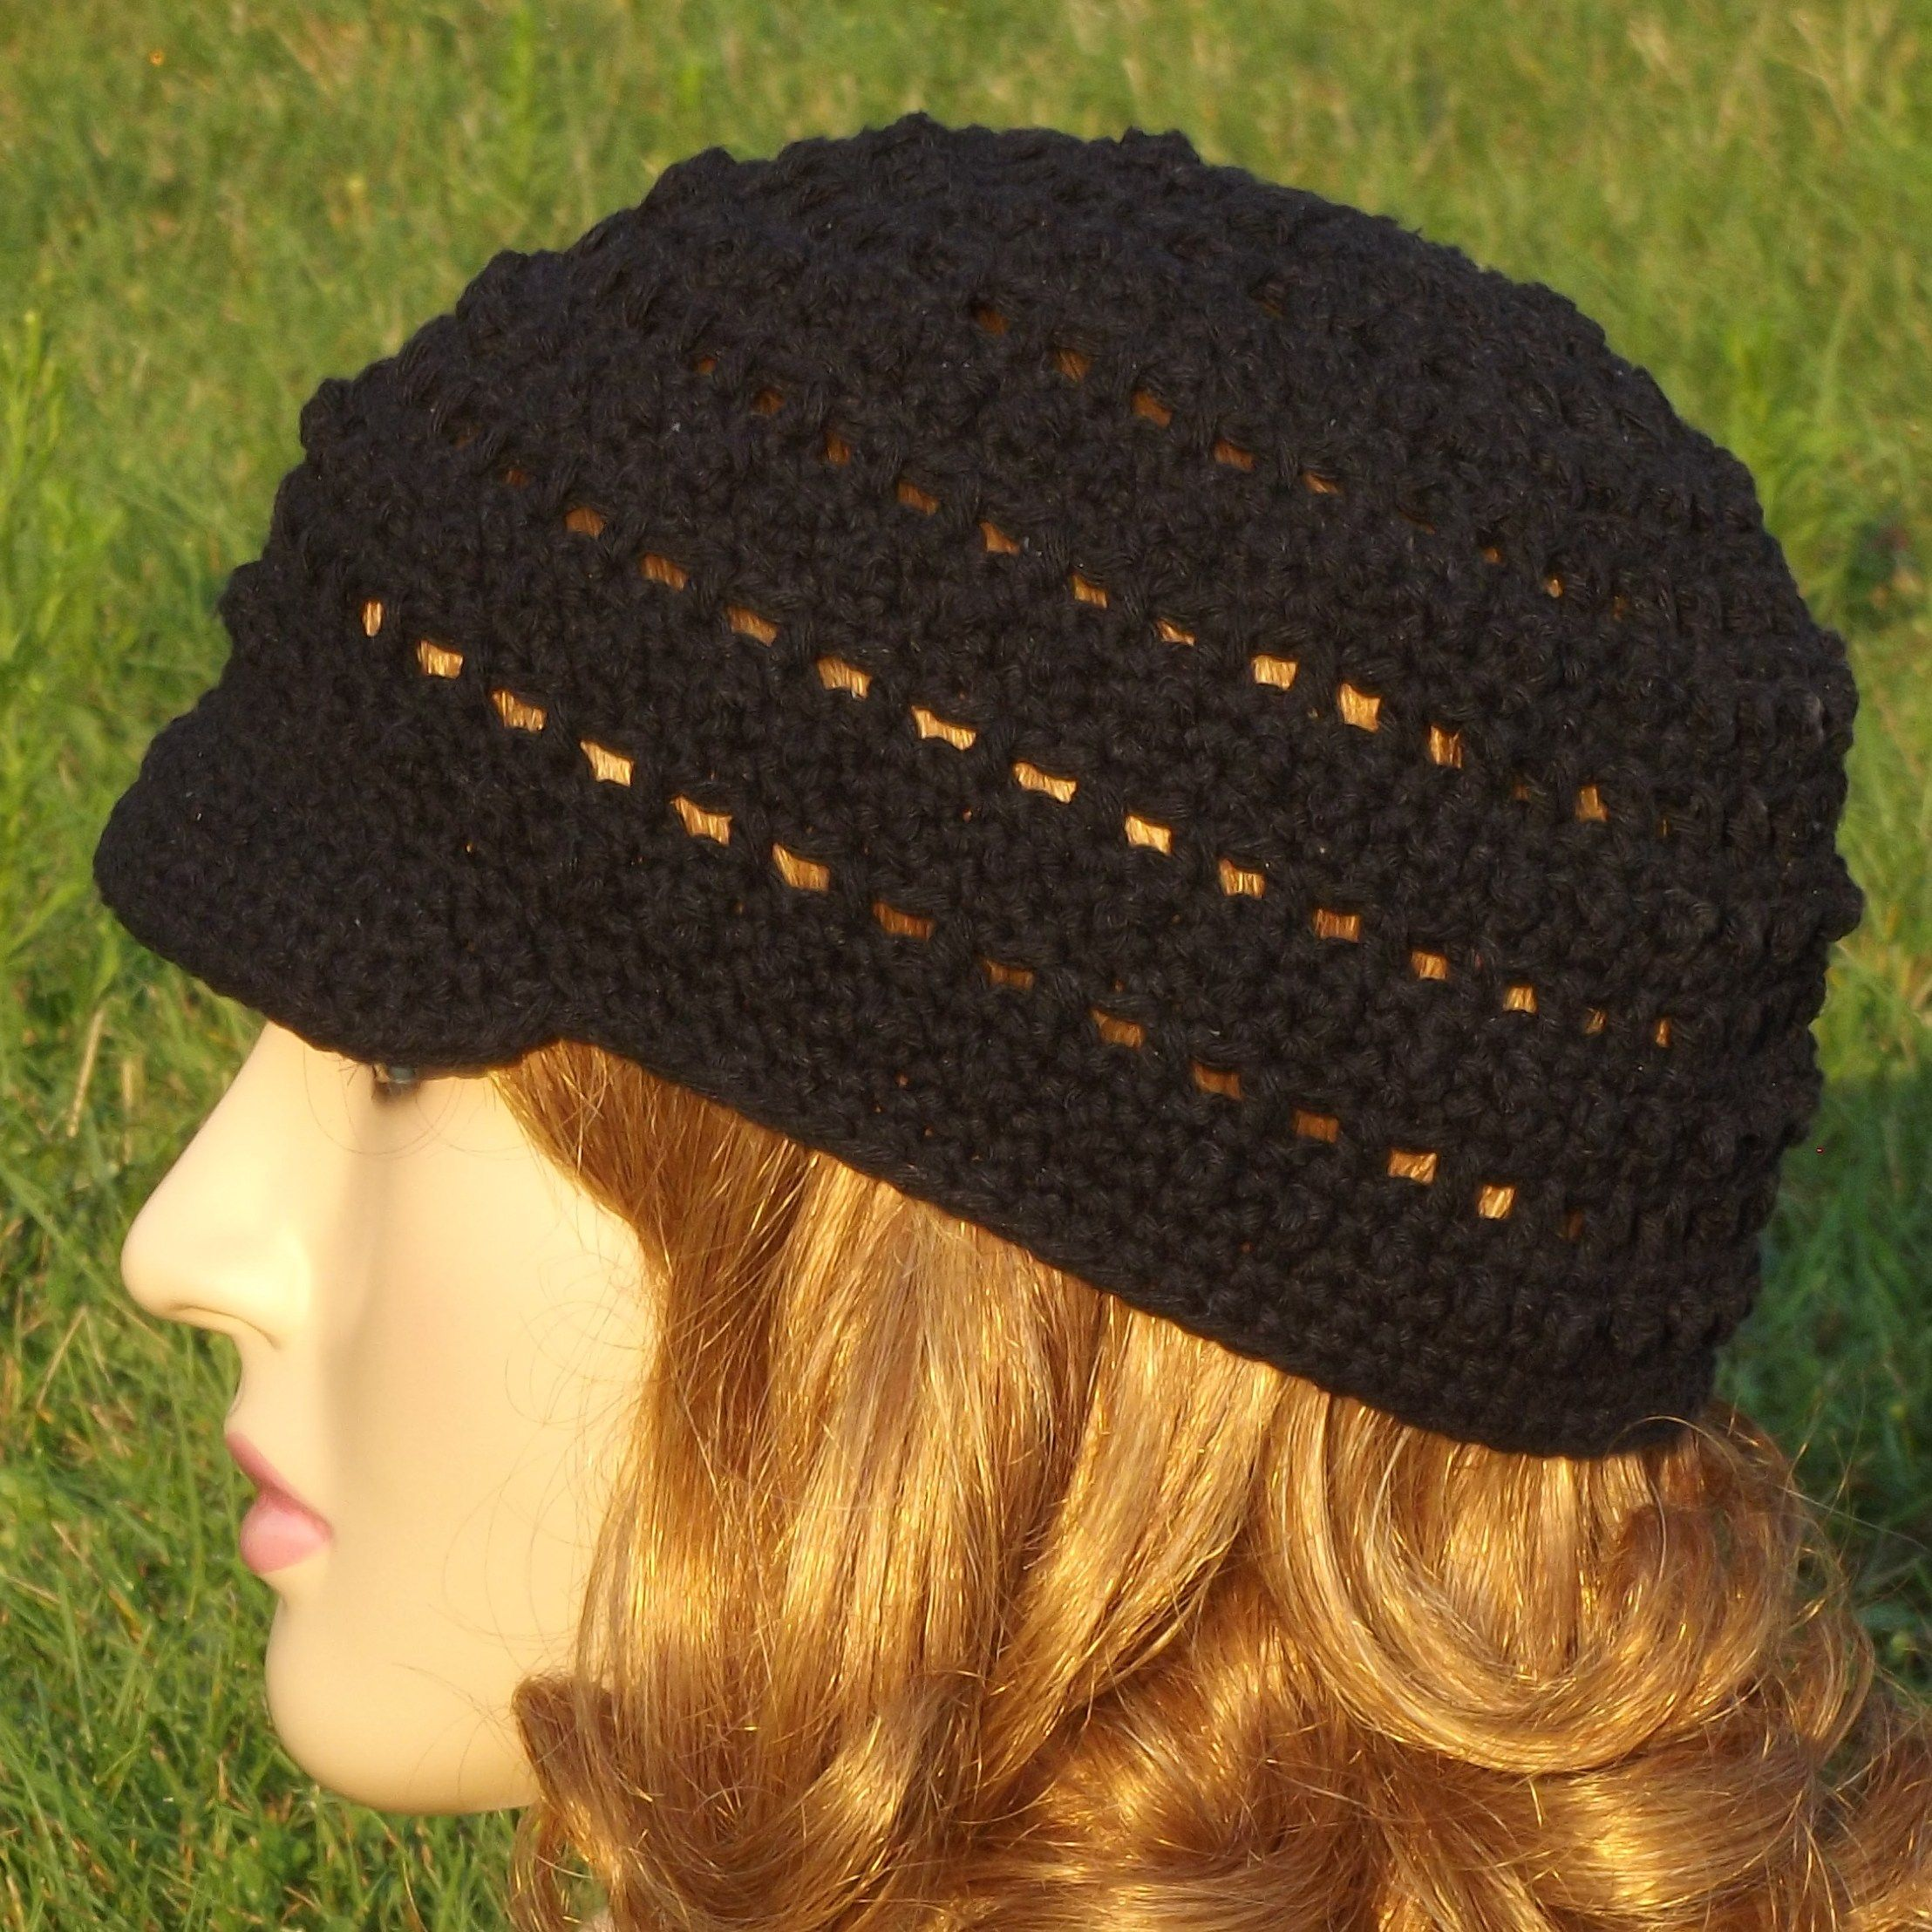 Free Crochet Pattern - Bead and Lace Hat | Crocheting and knitting ...